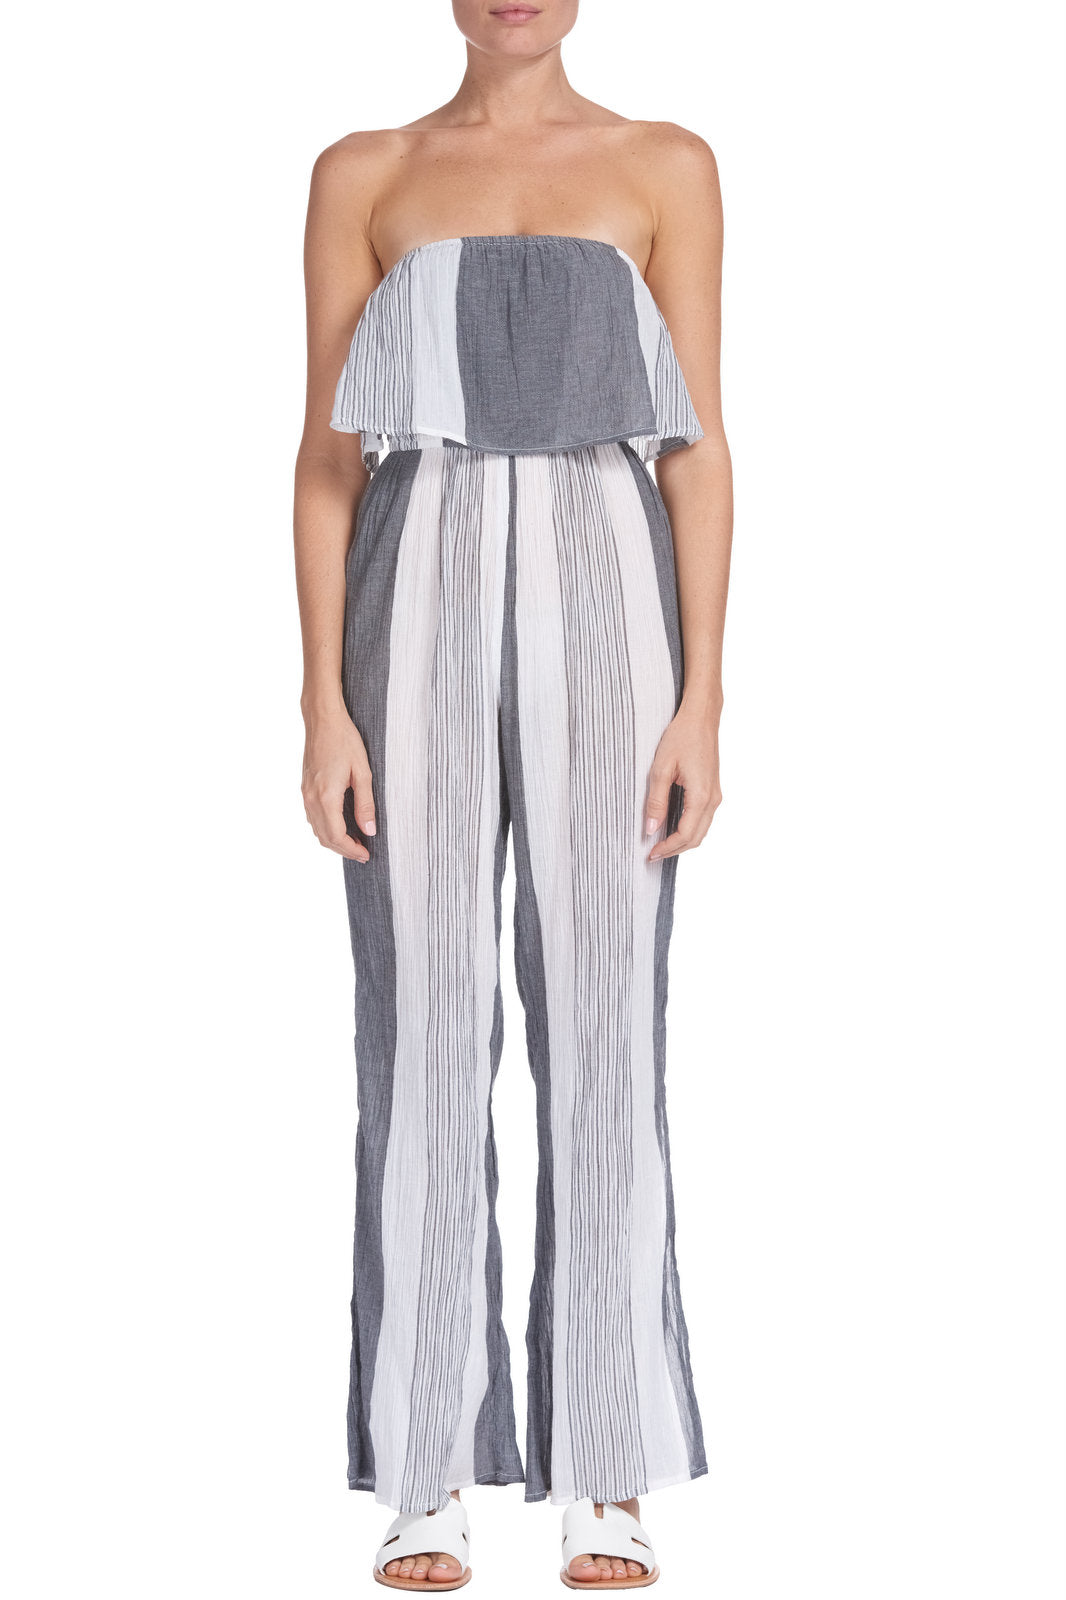 Charcoal Grey and White Stripe Strapless Jumpsuit